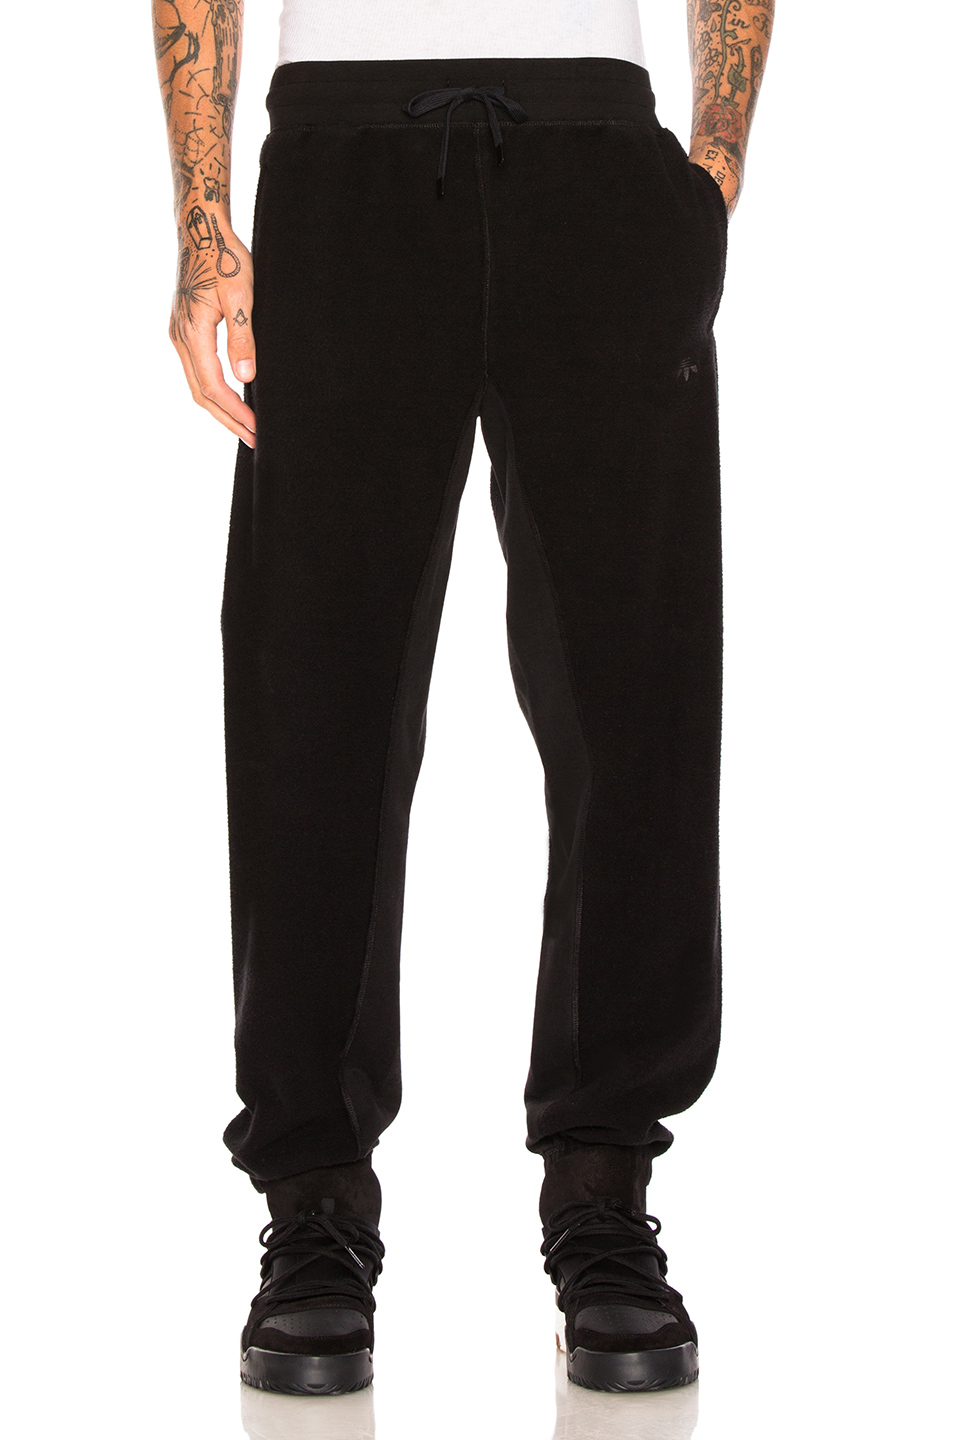 adidas by Alexander Wang Inout Sweatpants in Black